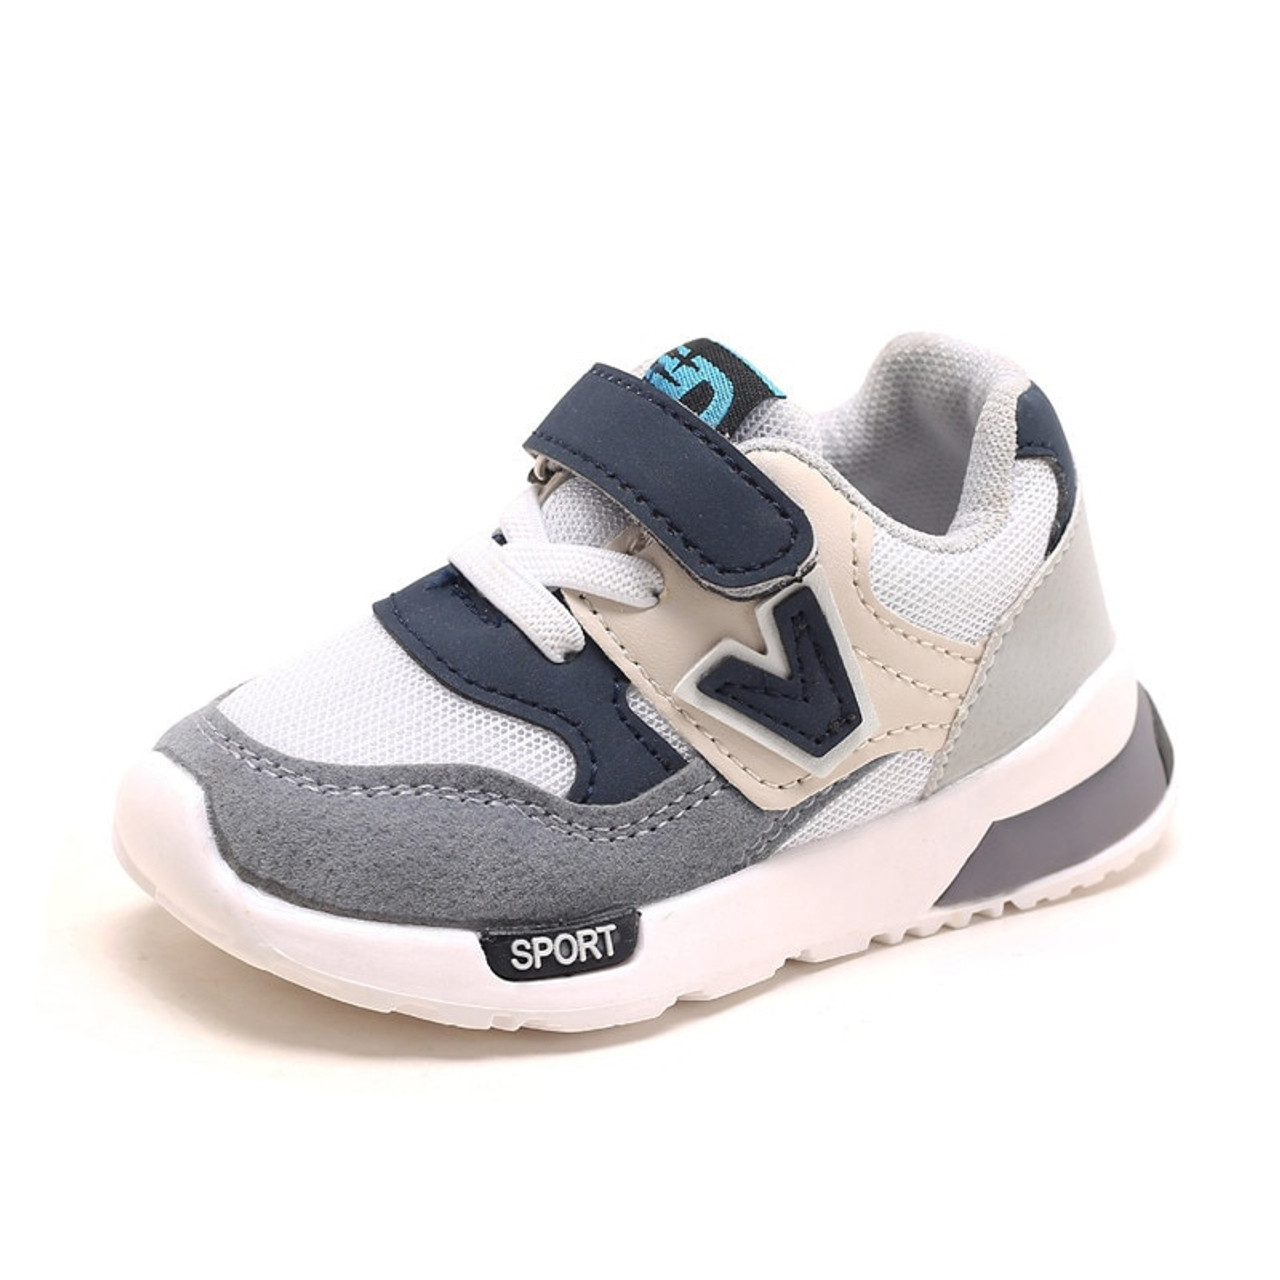 8a5dee04 COZULMA Baby Kids Shoes Sneakers Kids Casual Shoes Children Outdoor Sport  Shoes Baby Toddler Sneakers Size 21-30